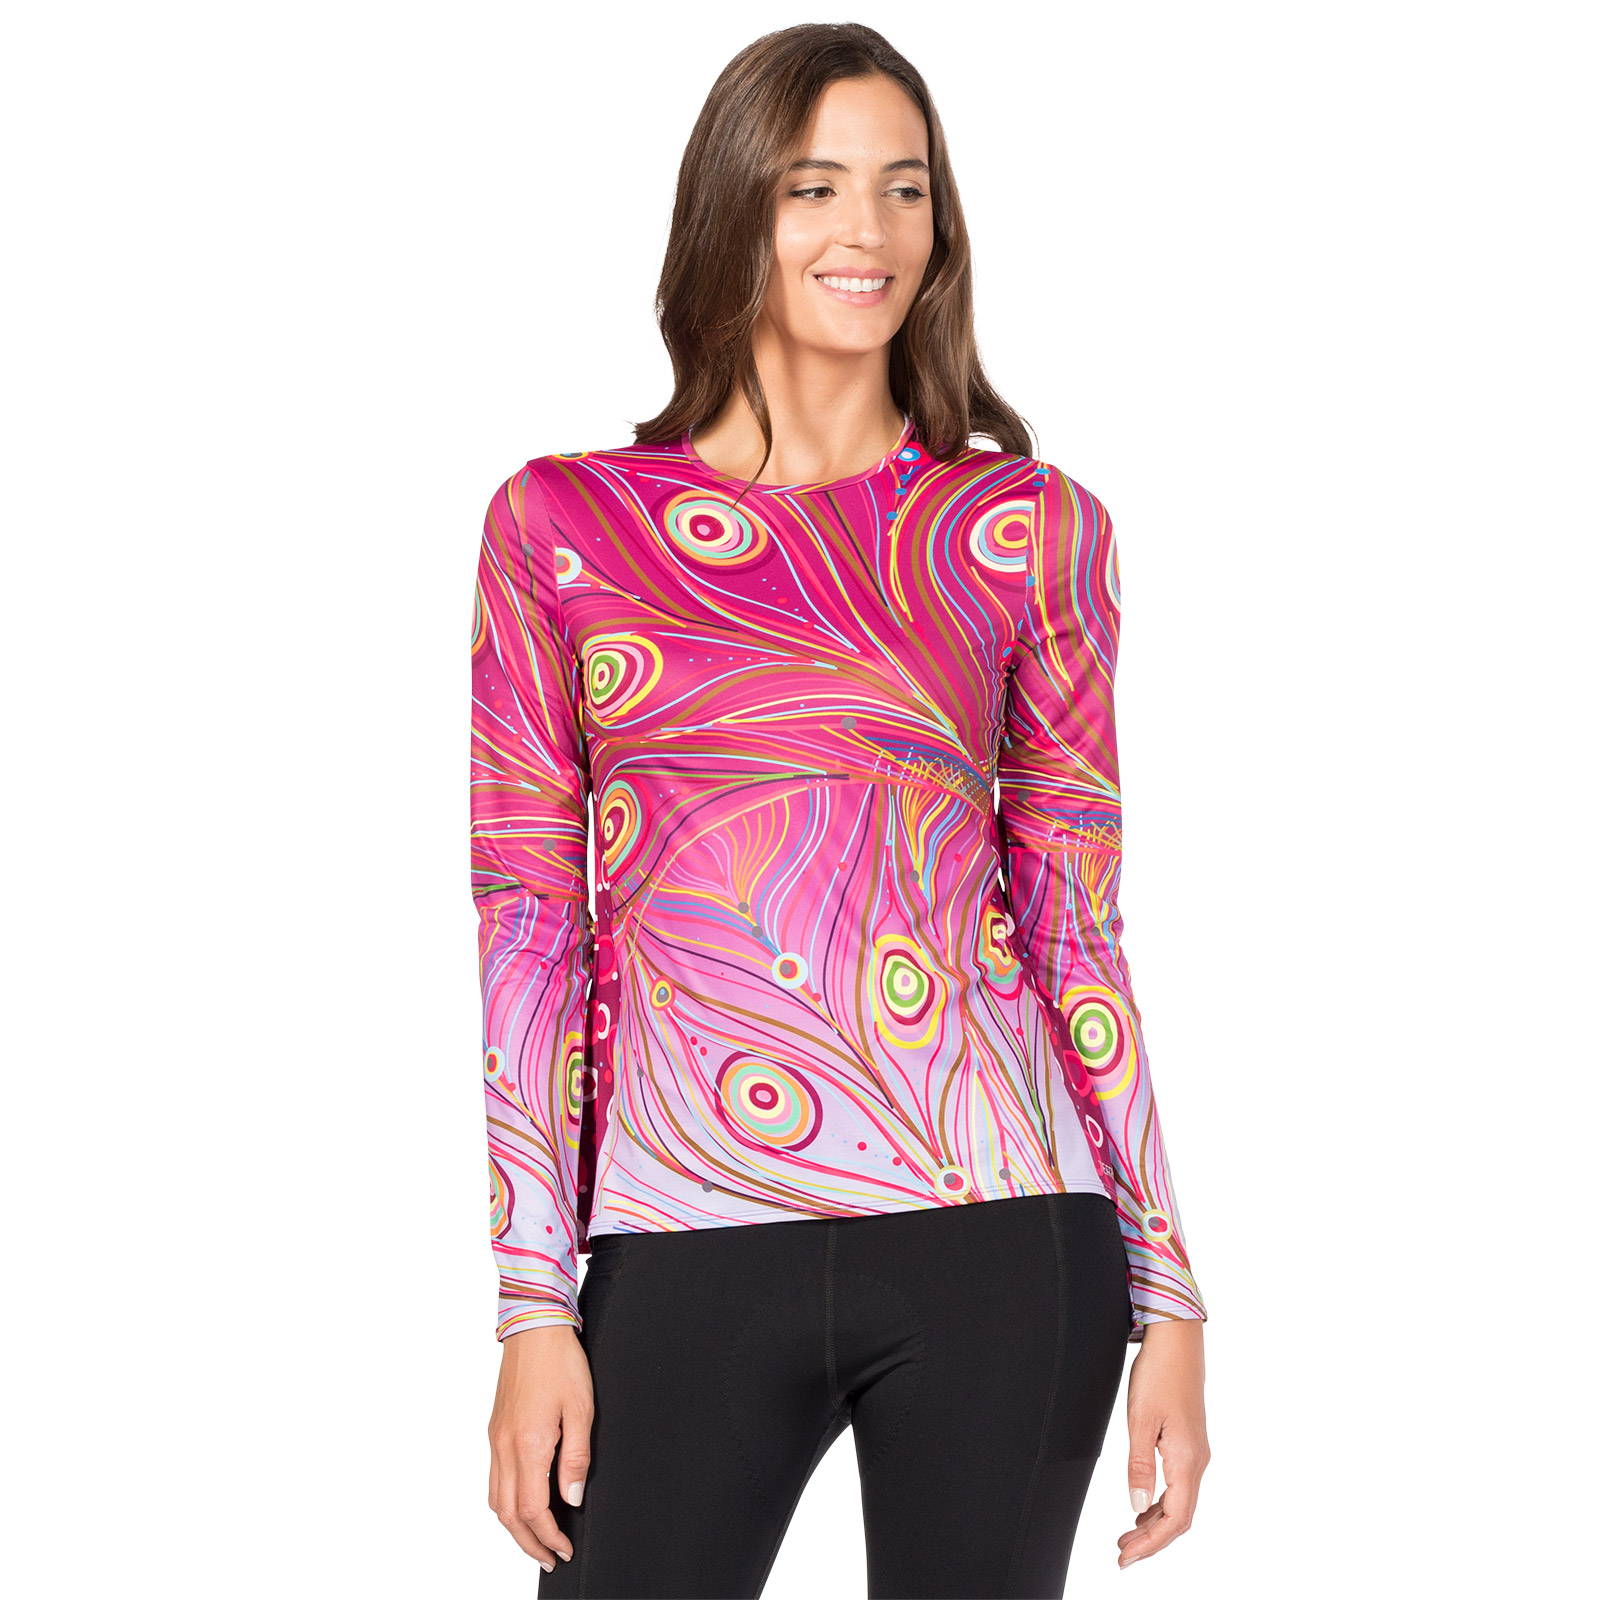 0550f4952 Terry Soleil Flow Long Sleeve Top - Peacock - Women s Cycling ...